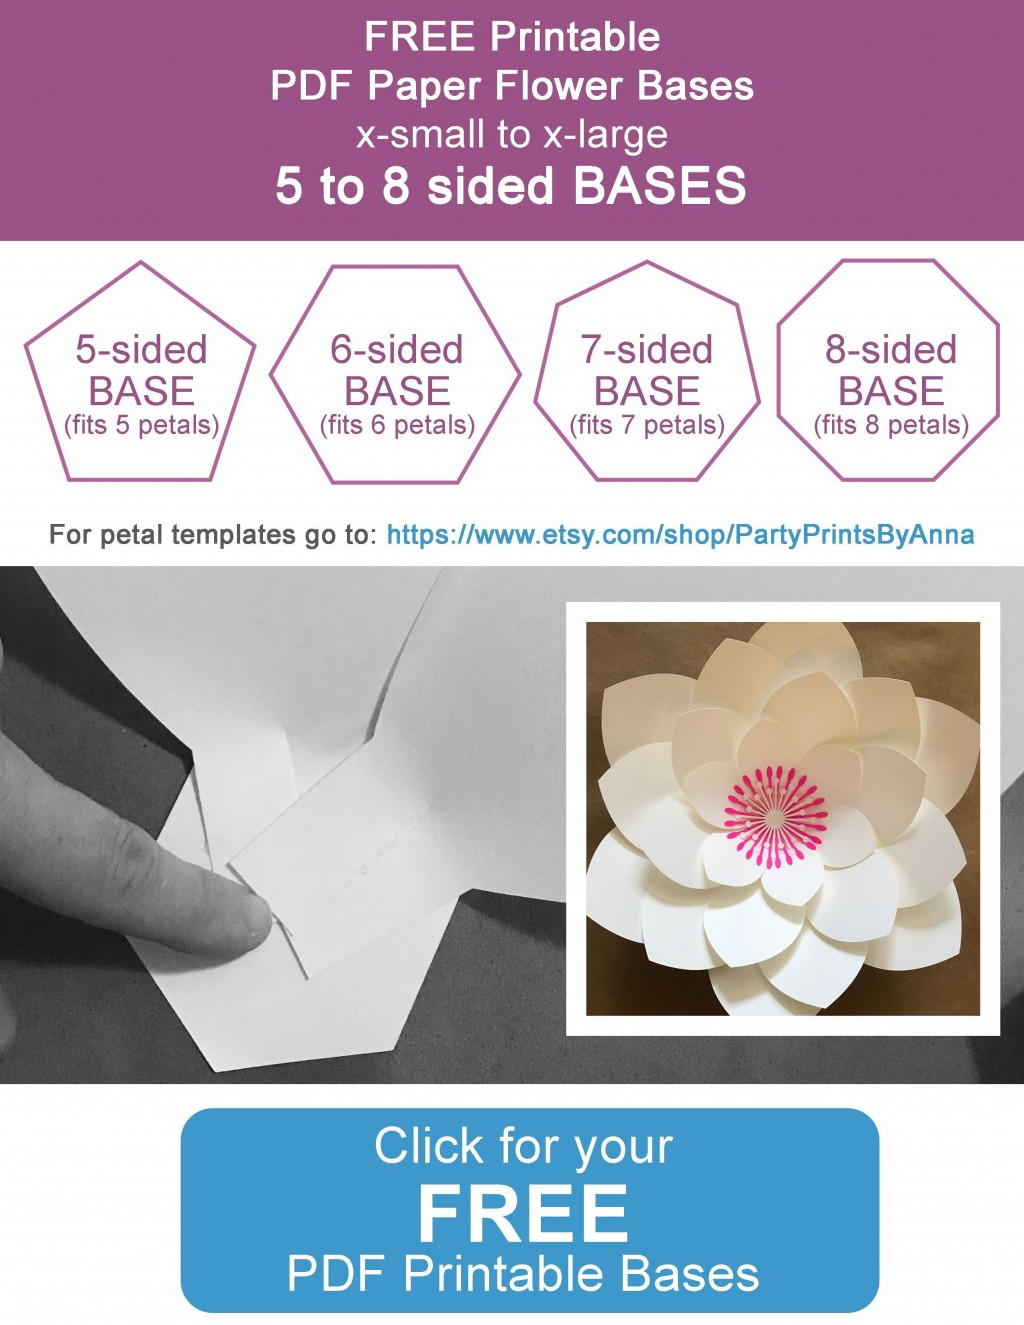 006 Exceptional Free Small Paper Flower Petal Template Sample  TemplatesLarge